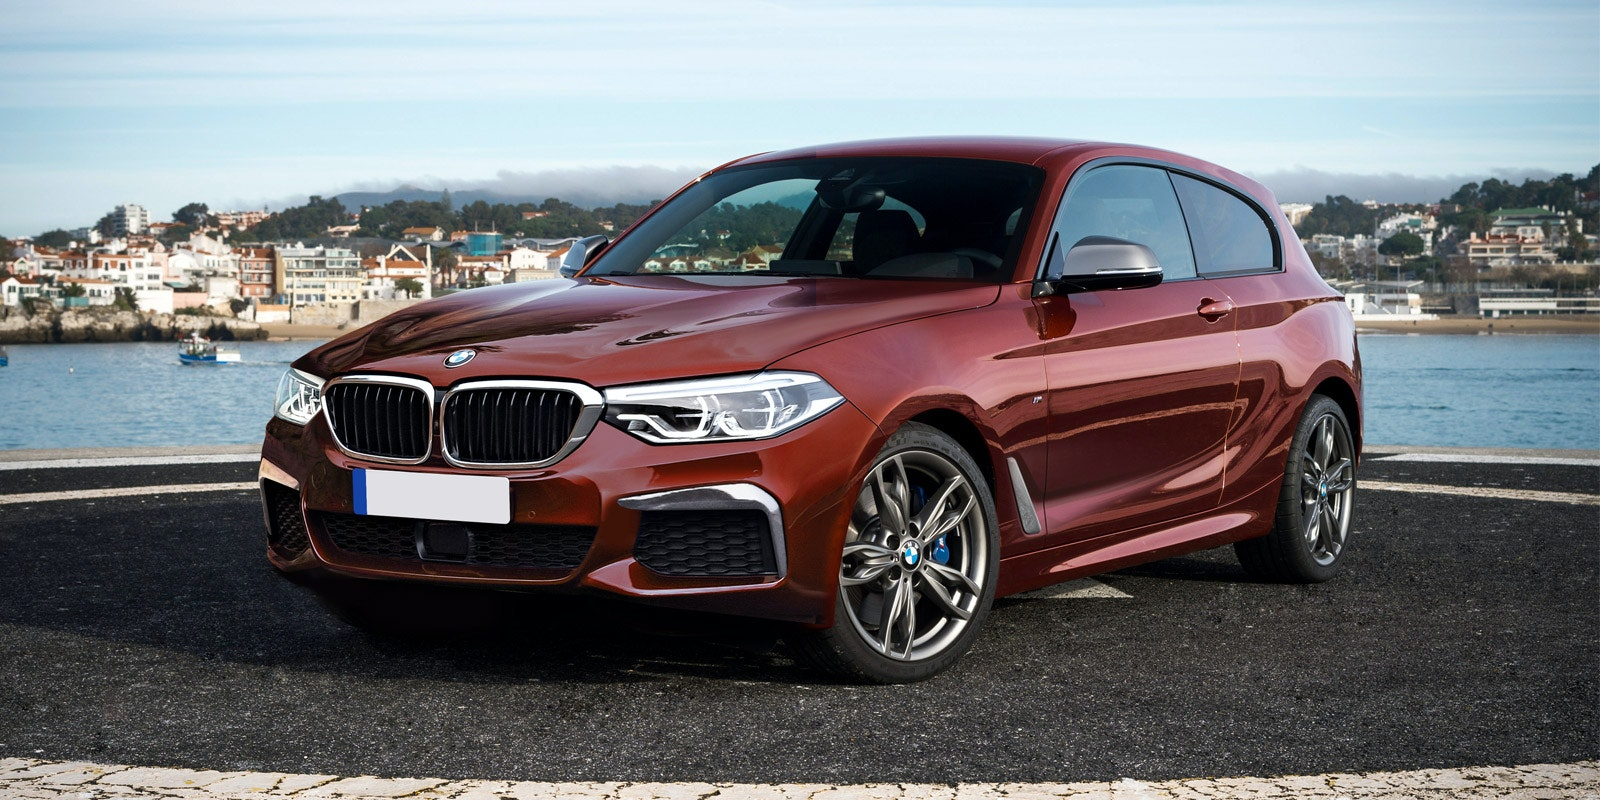 Bmw 1 Series New Model Release Date >> 2019 Bmw 1 Series Price Specs And Release Date Carwow